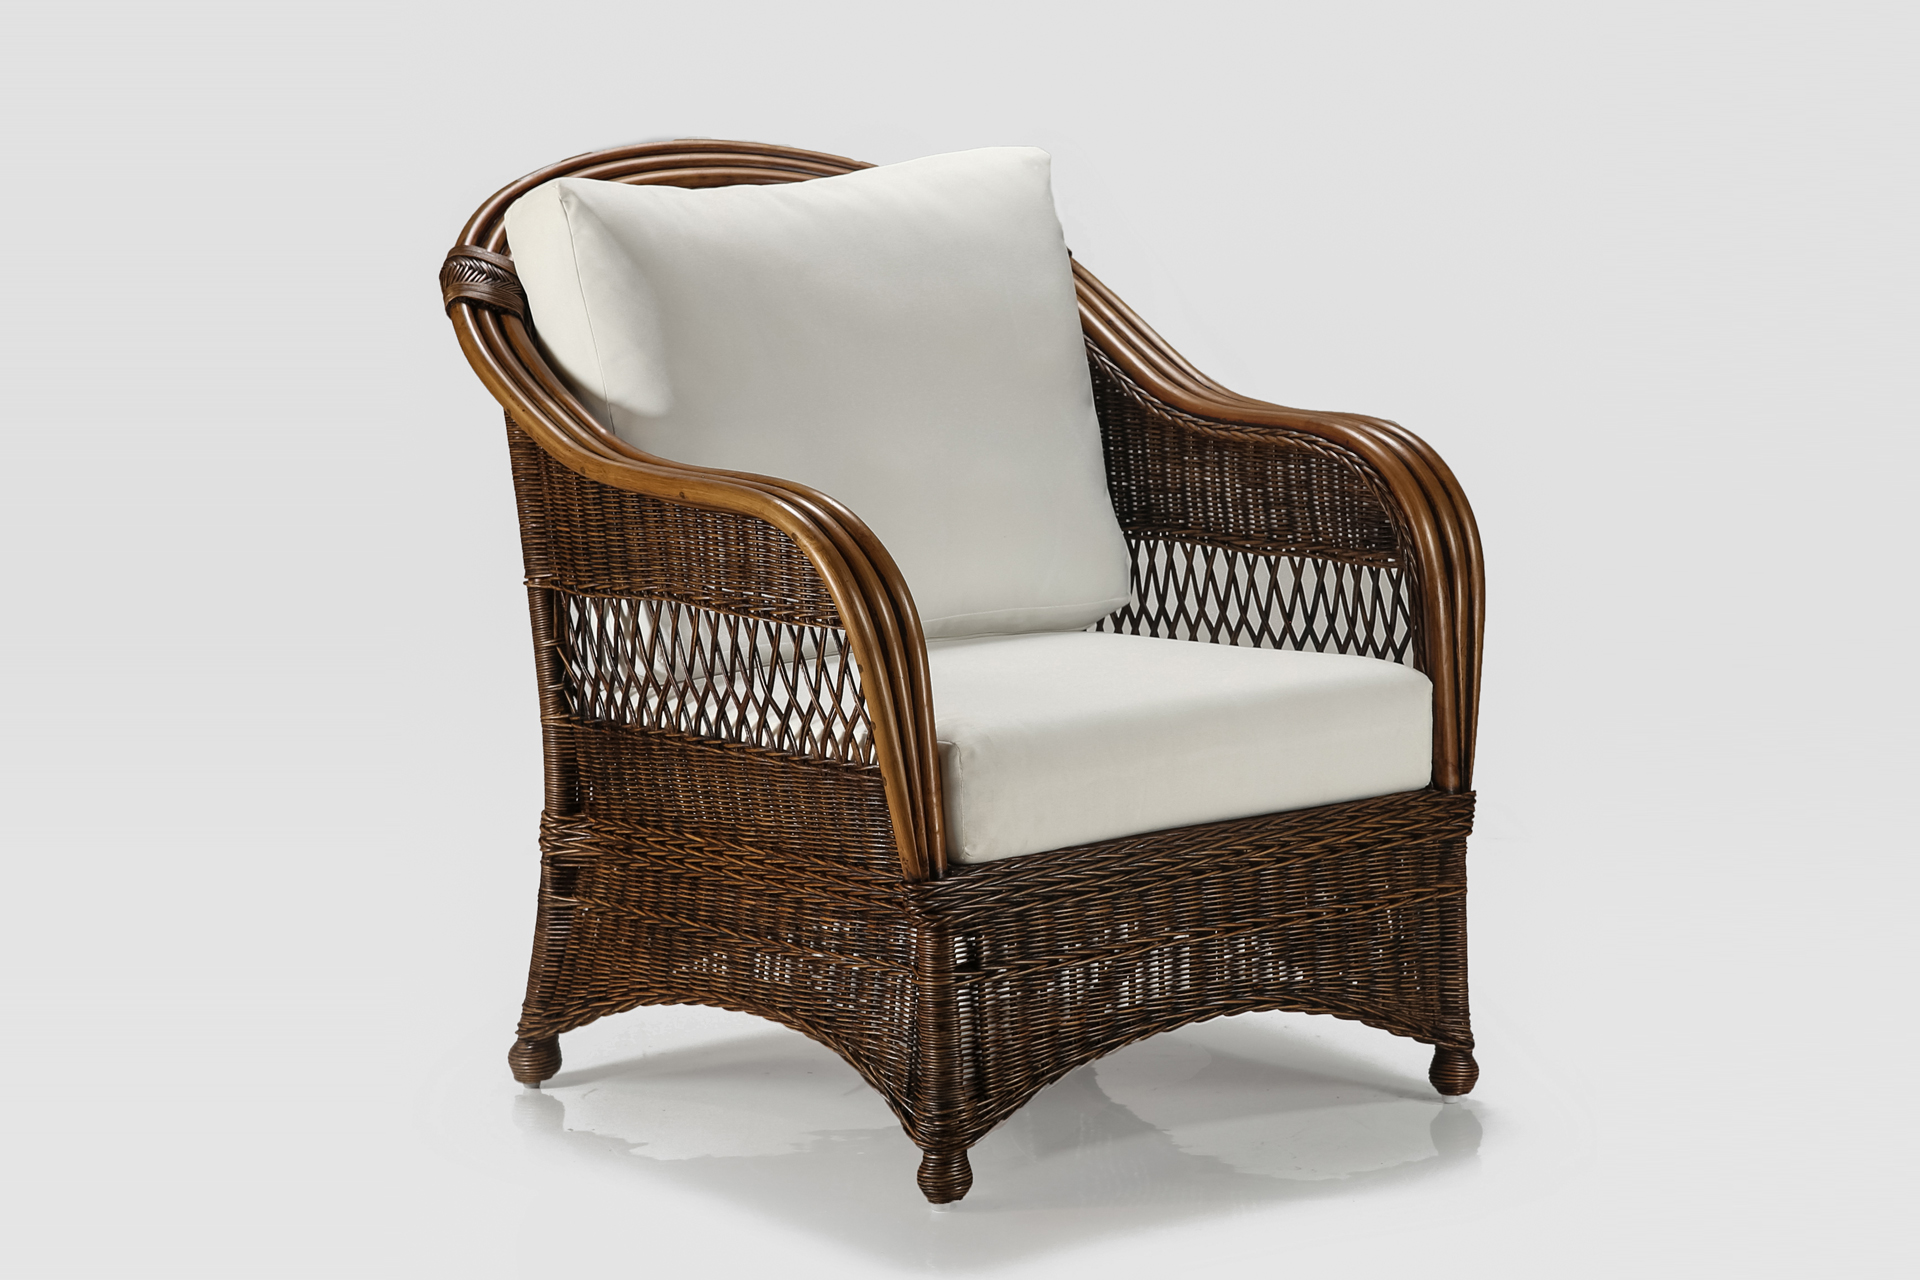 Bohol Armchair Naturally Cane Rattan And Wicker Furniture